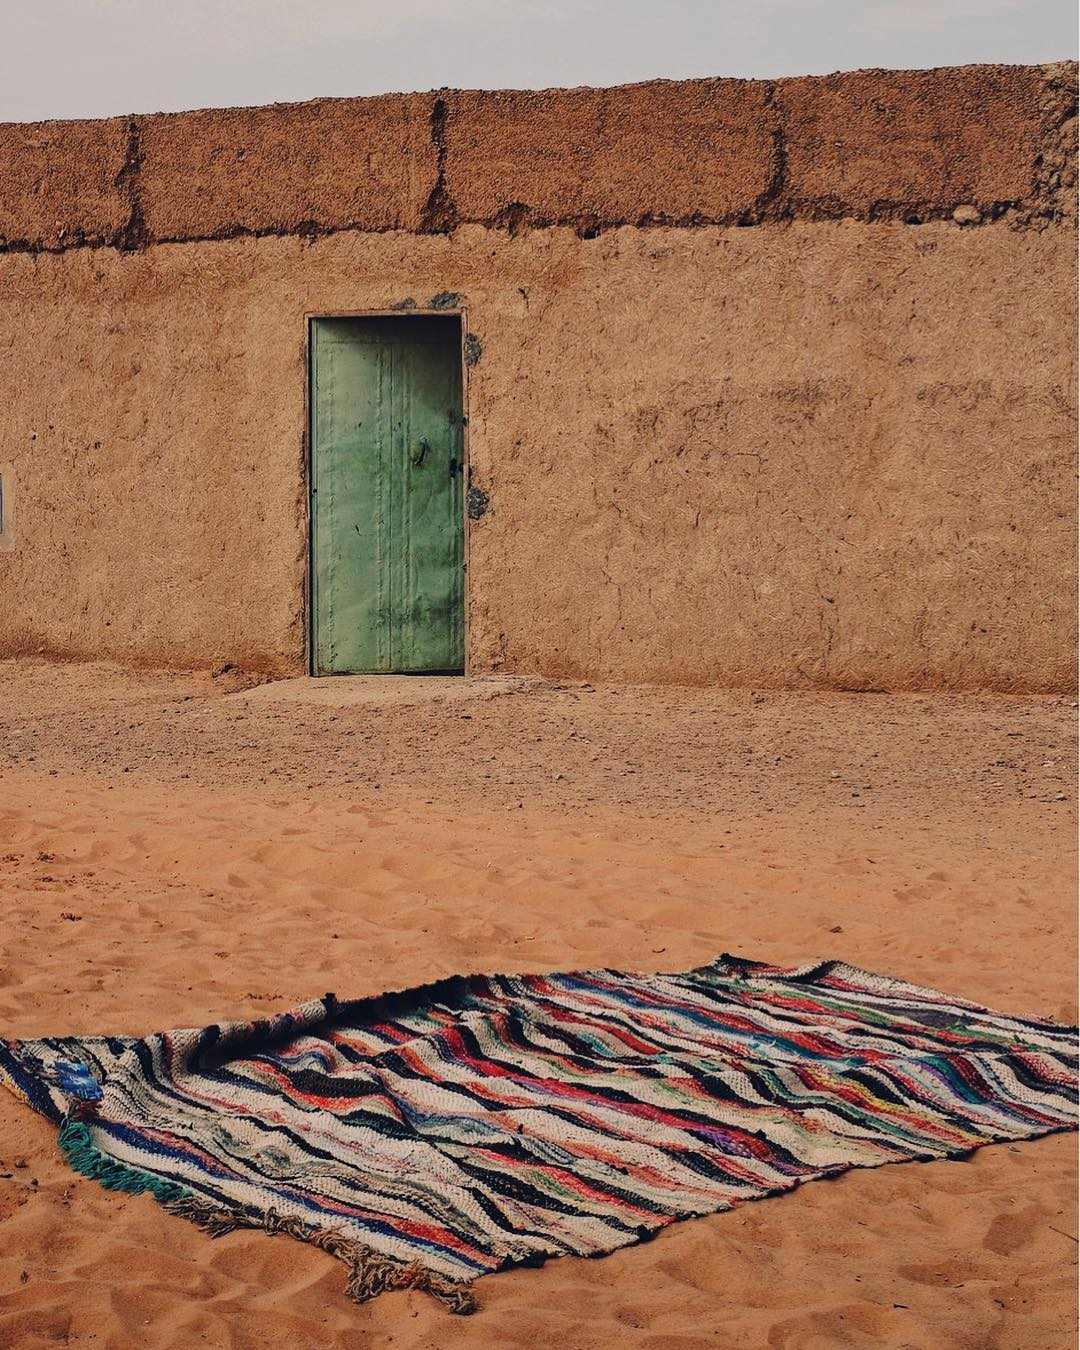 rug in the sahara desert by thread caravan.jpg